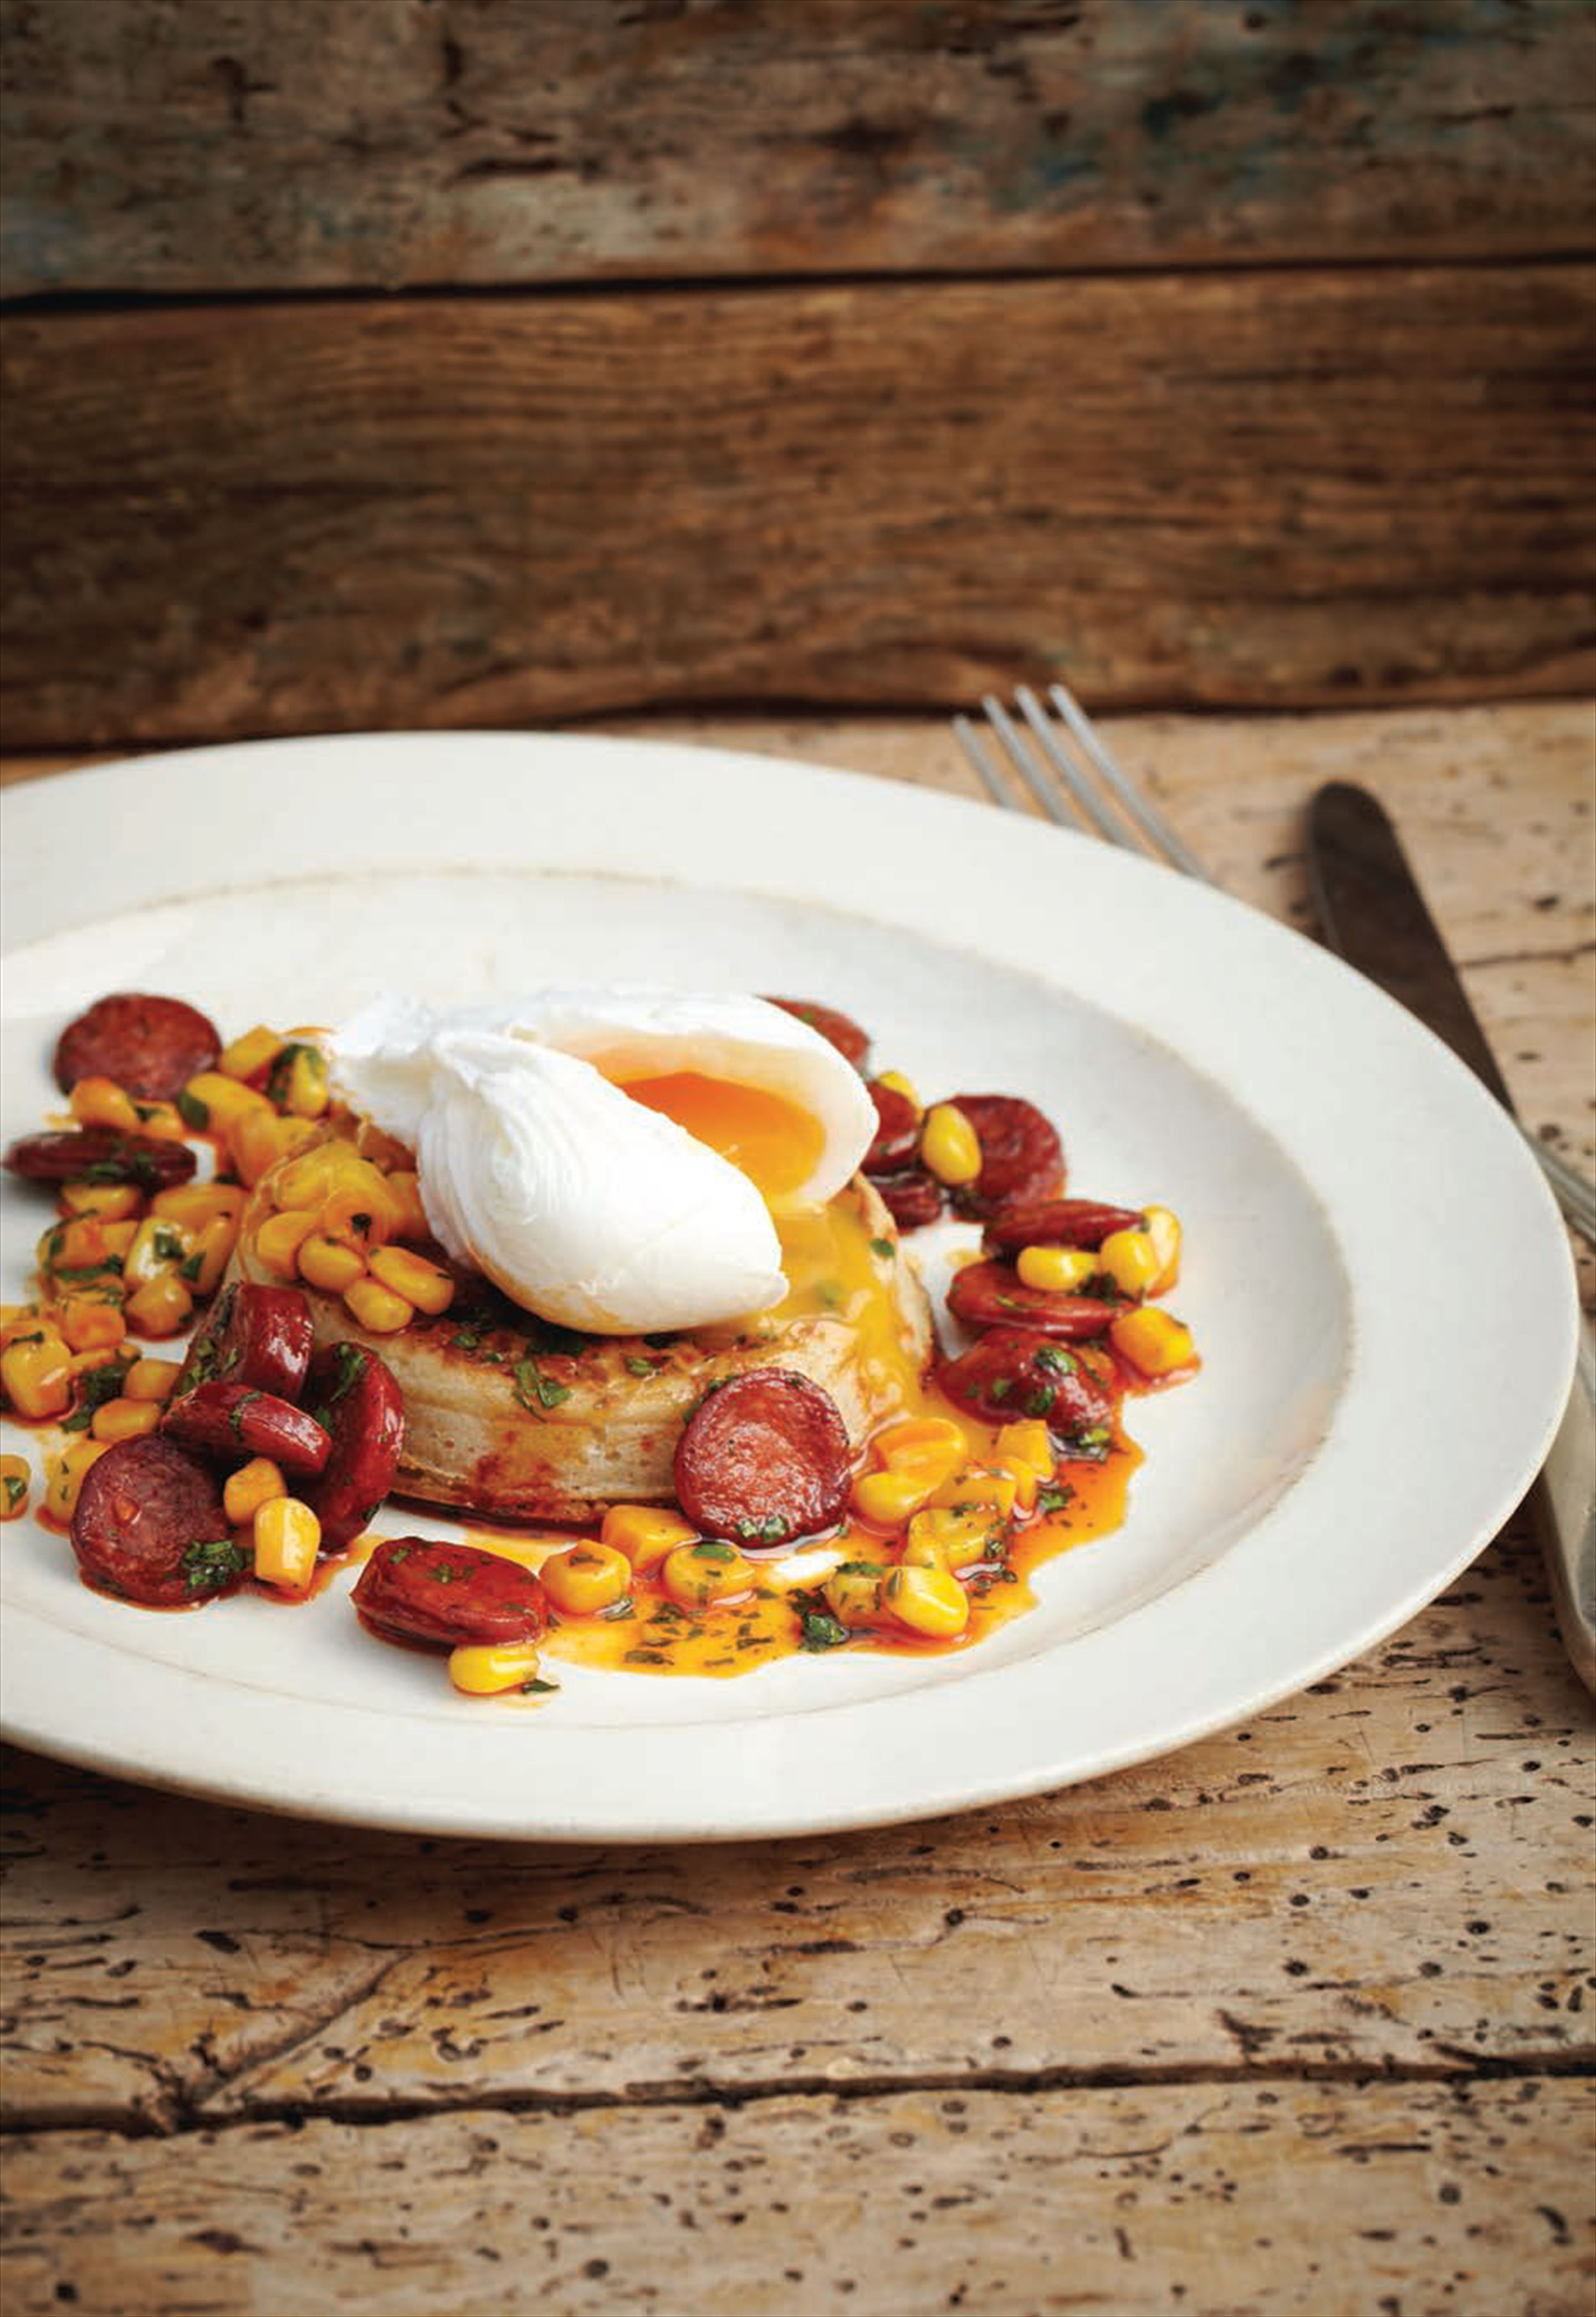 Toasted crumpets with poached eggs, bath pig chorizo and sweetcorn